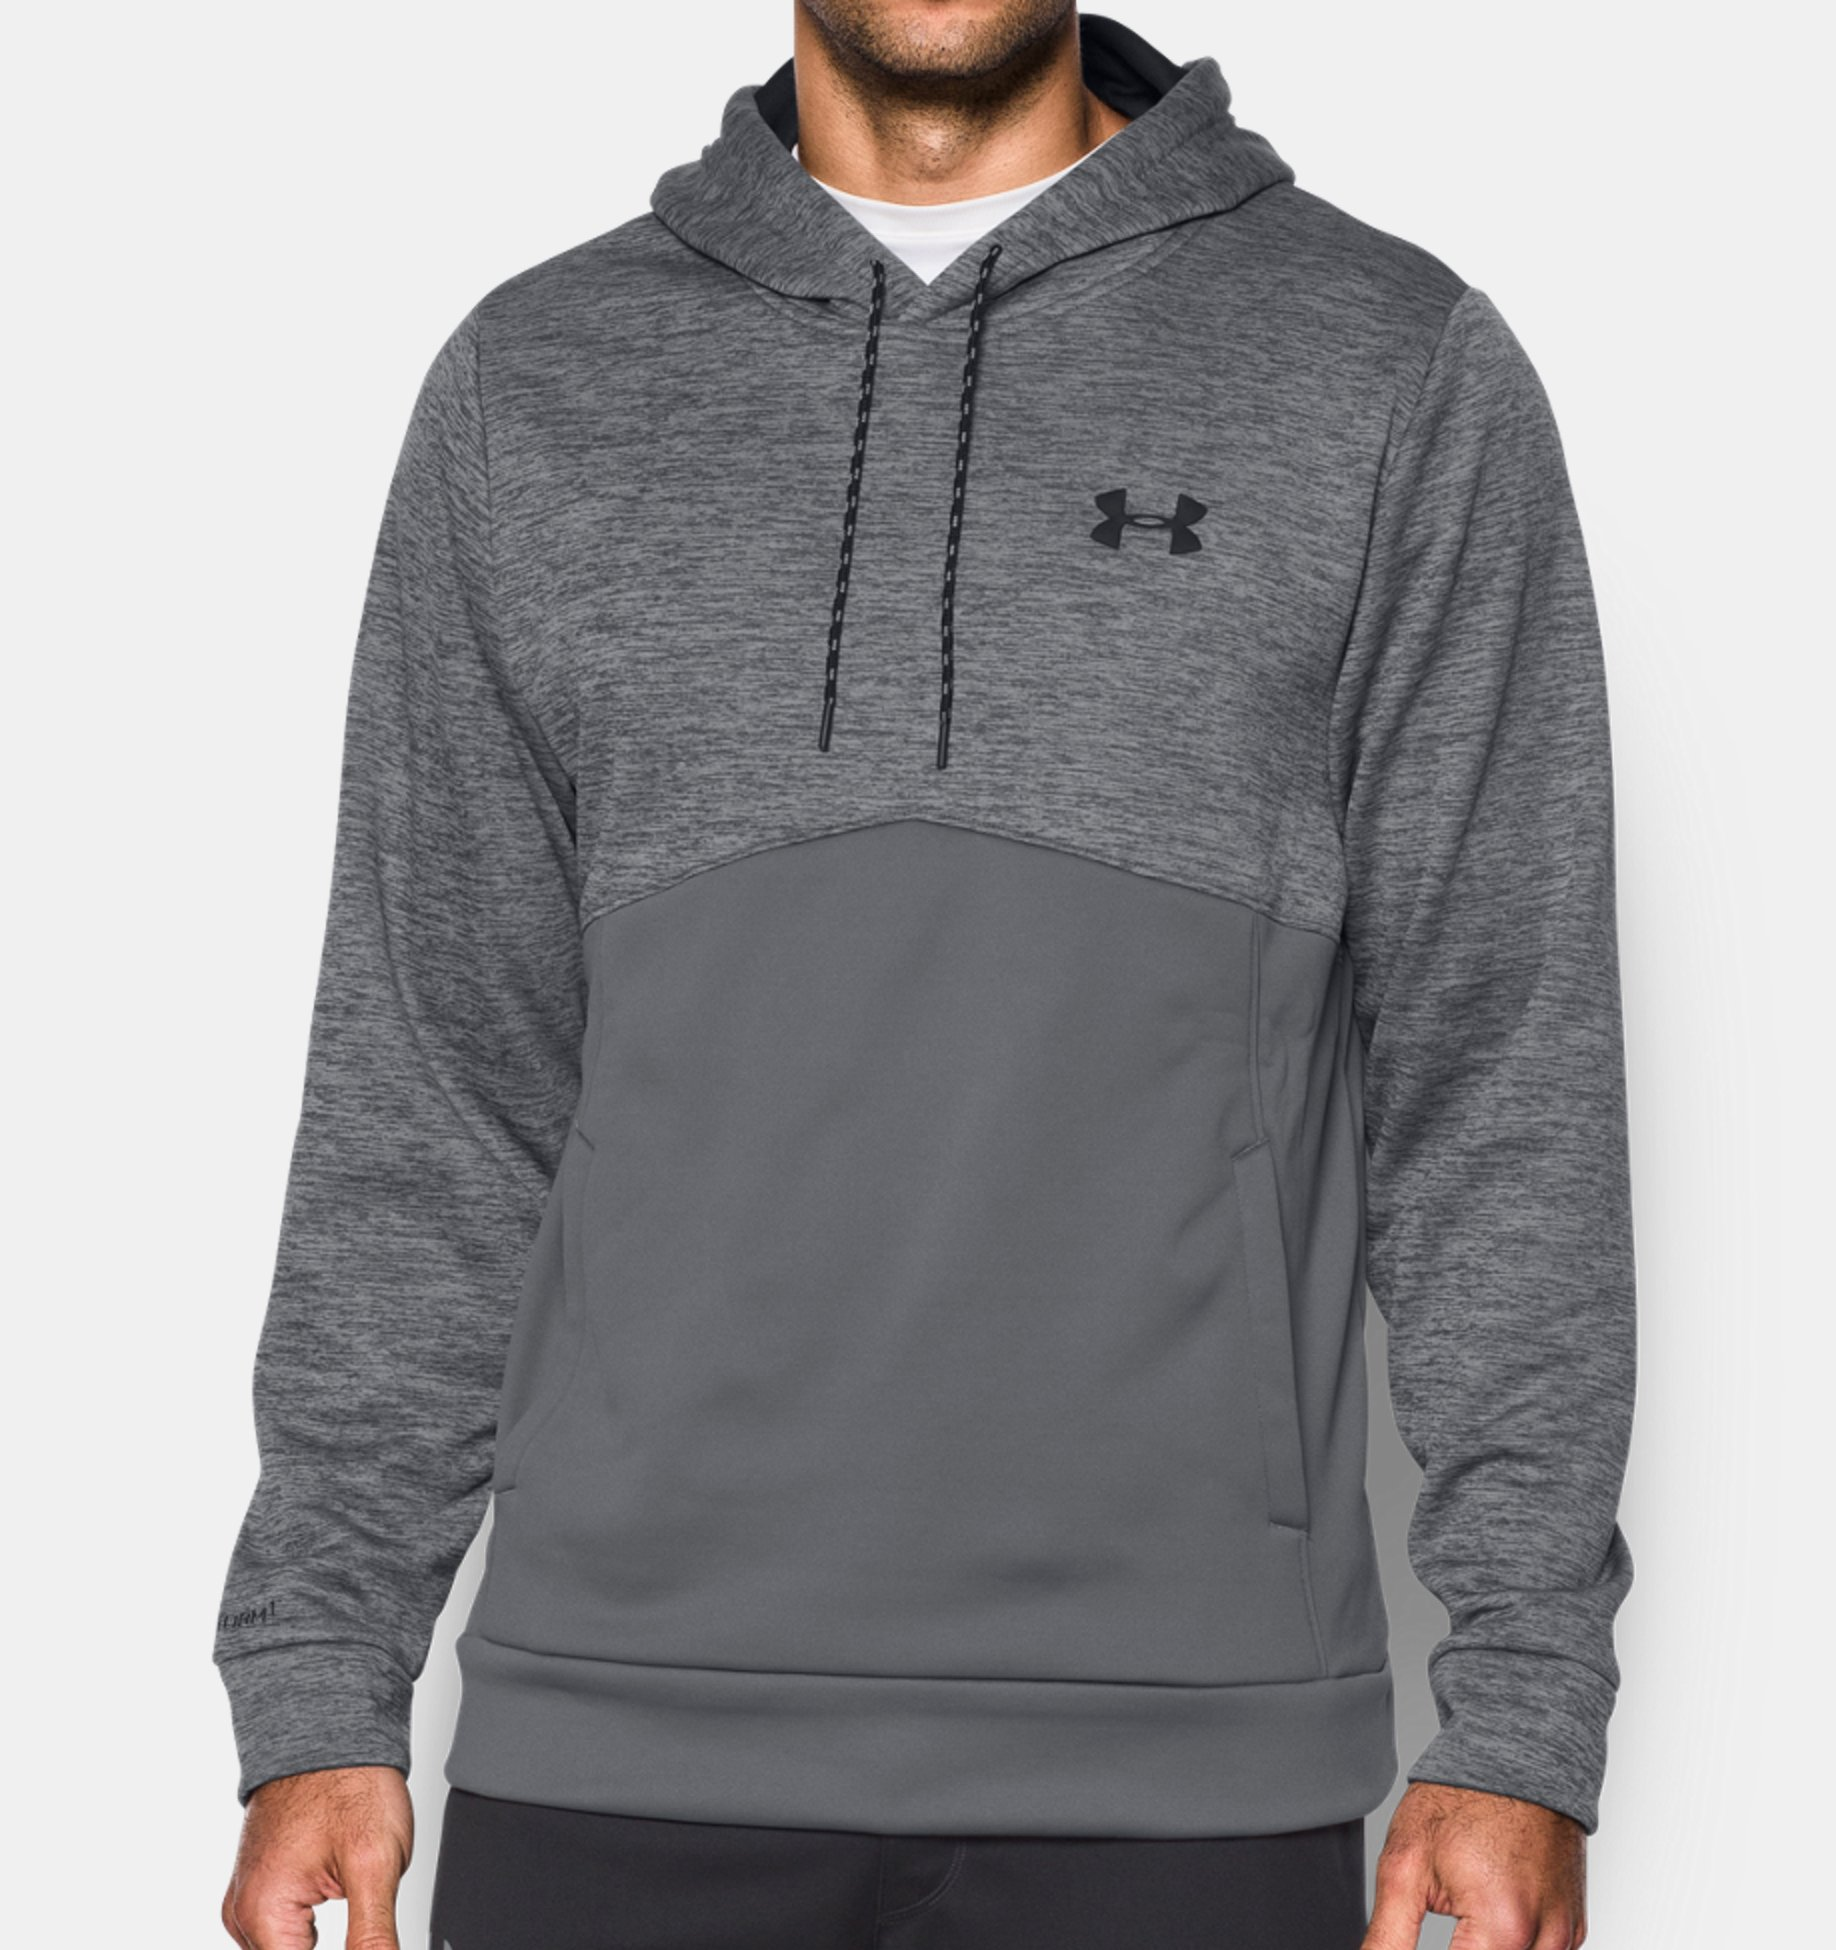 Under Armour Storm Fleece Twist Hoodie, karbónová